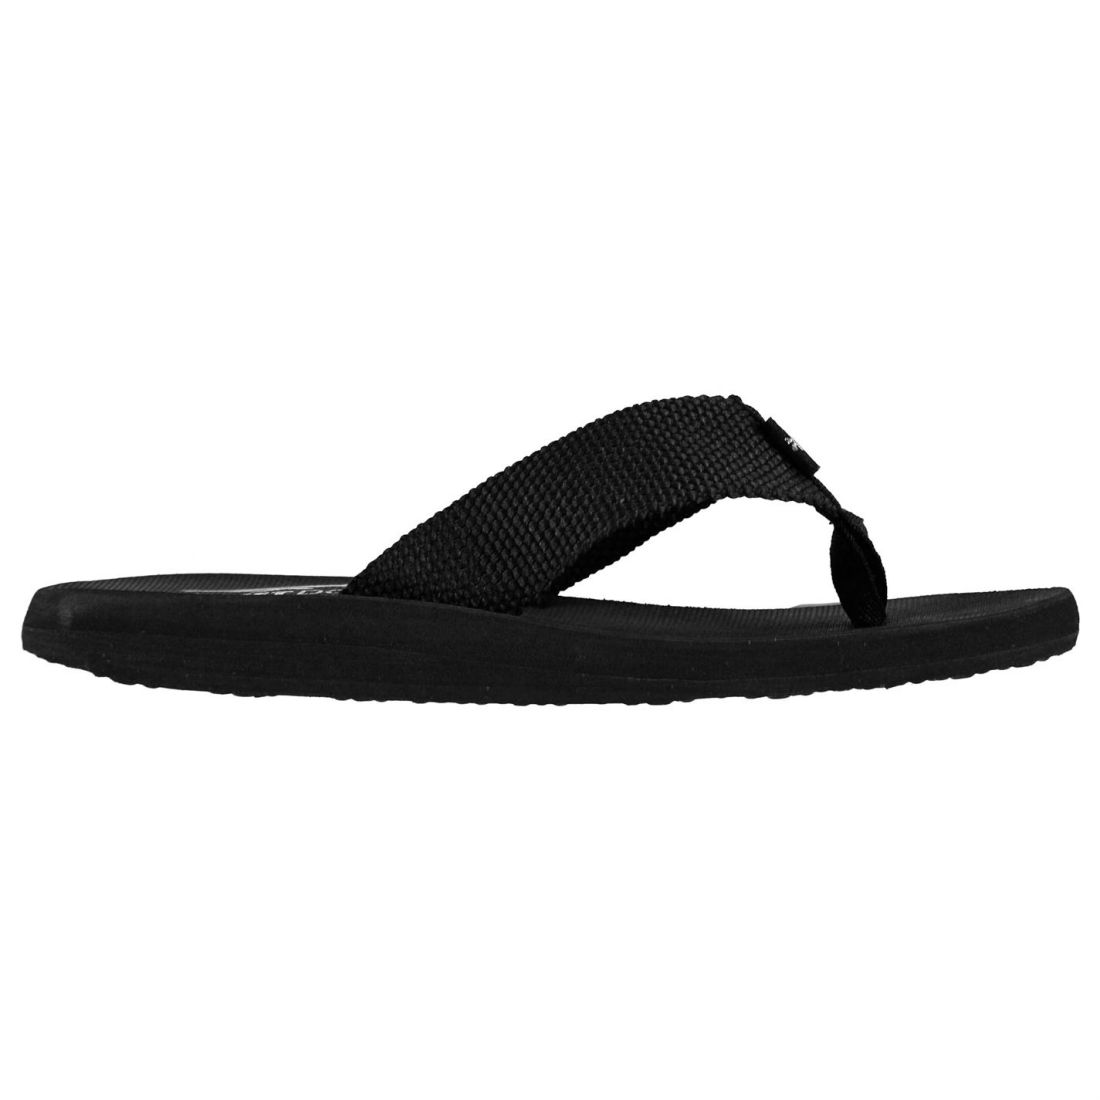 7050c02b3f6c6 Rocket Dog Nina Web Flip Flops Ladies Flat Sandals Slip On ...